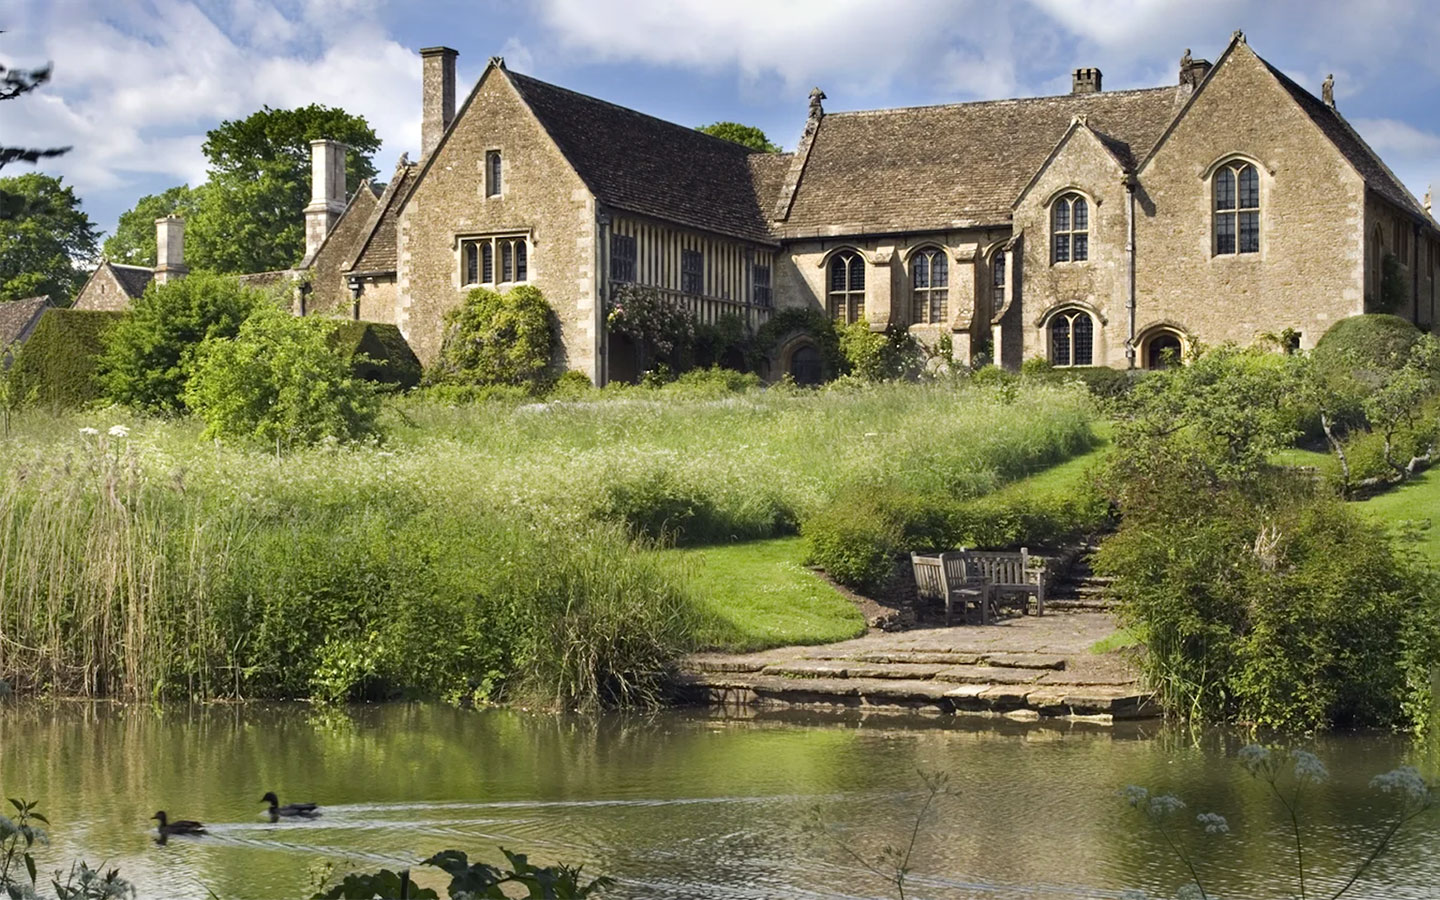 Great Chalfield Manor and Garden National Trust site in the Cotswolds